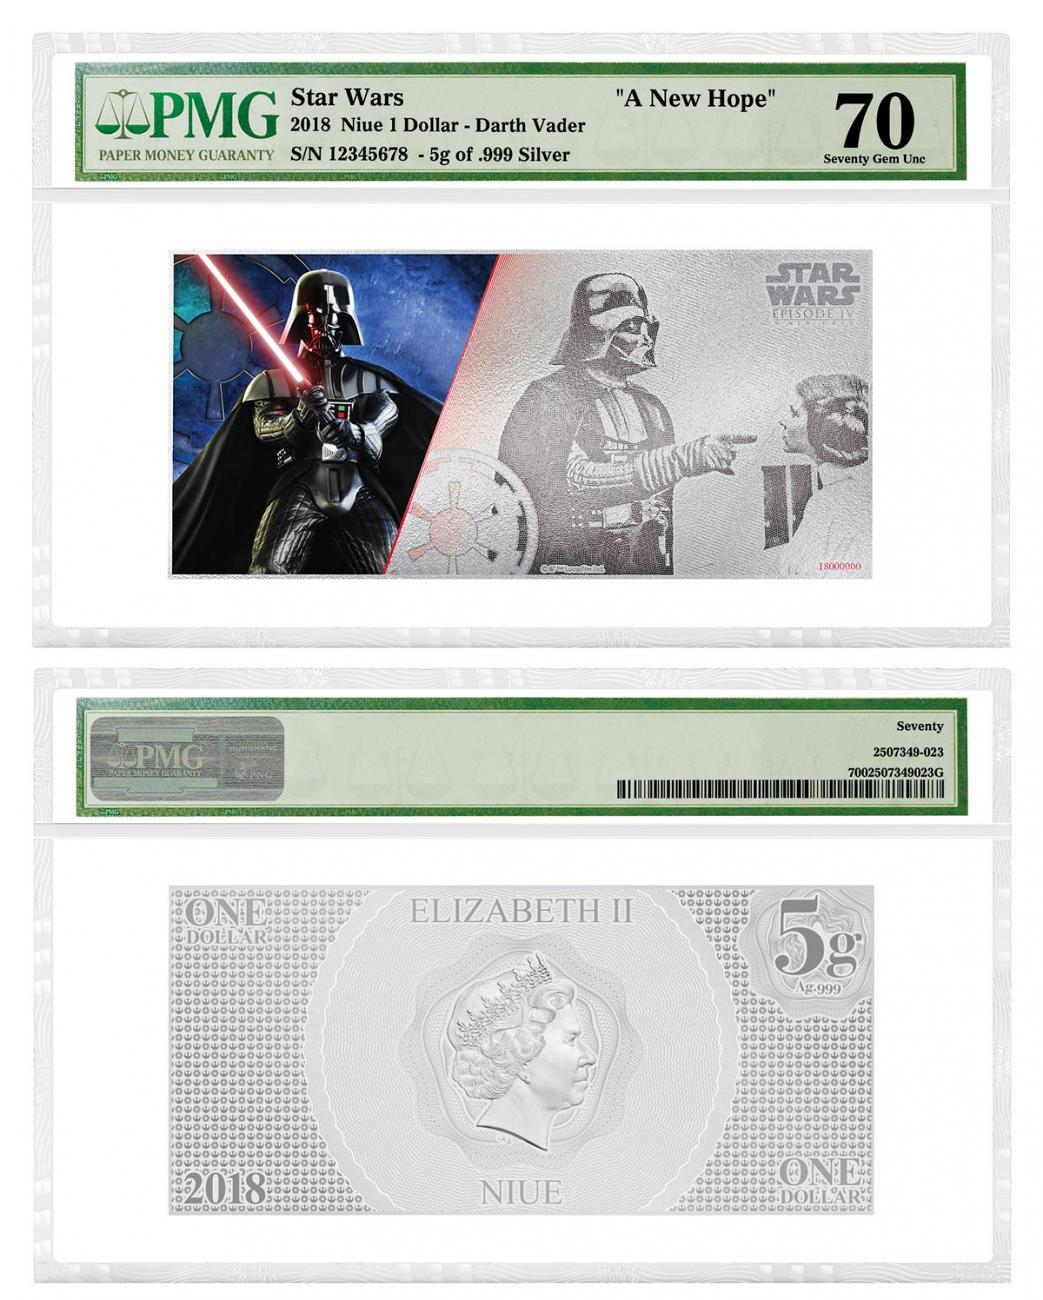 2018 Niue Star Wars: A New Hope - Darth Vader Foil Note 5 g Silver Colorized $1 Coin PMG Gem Unc 70